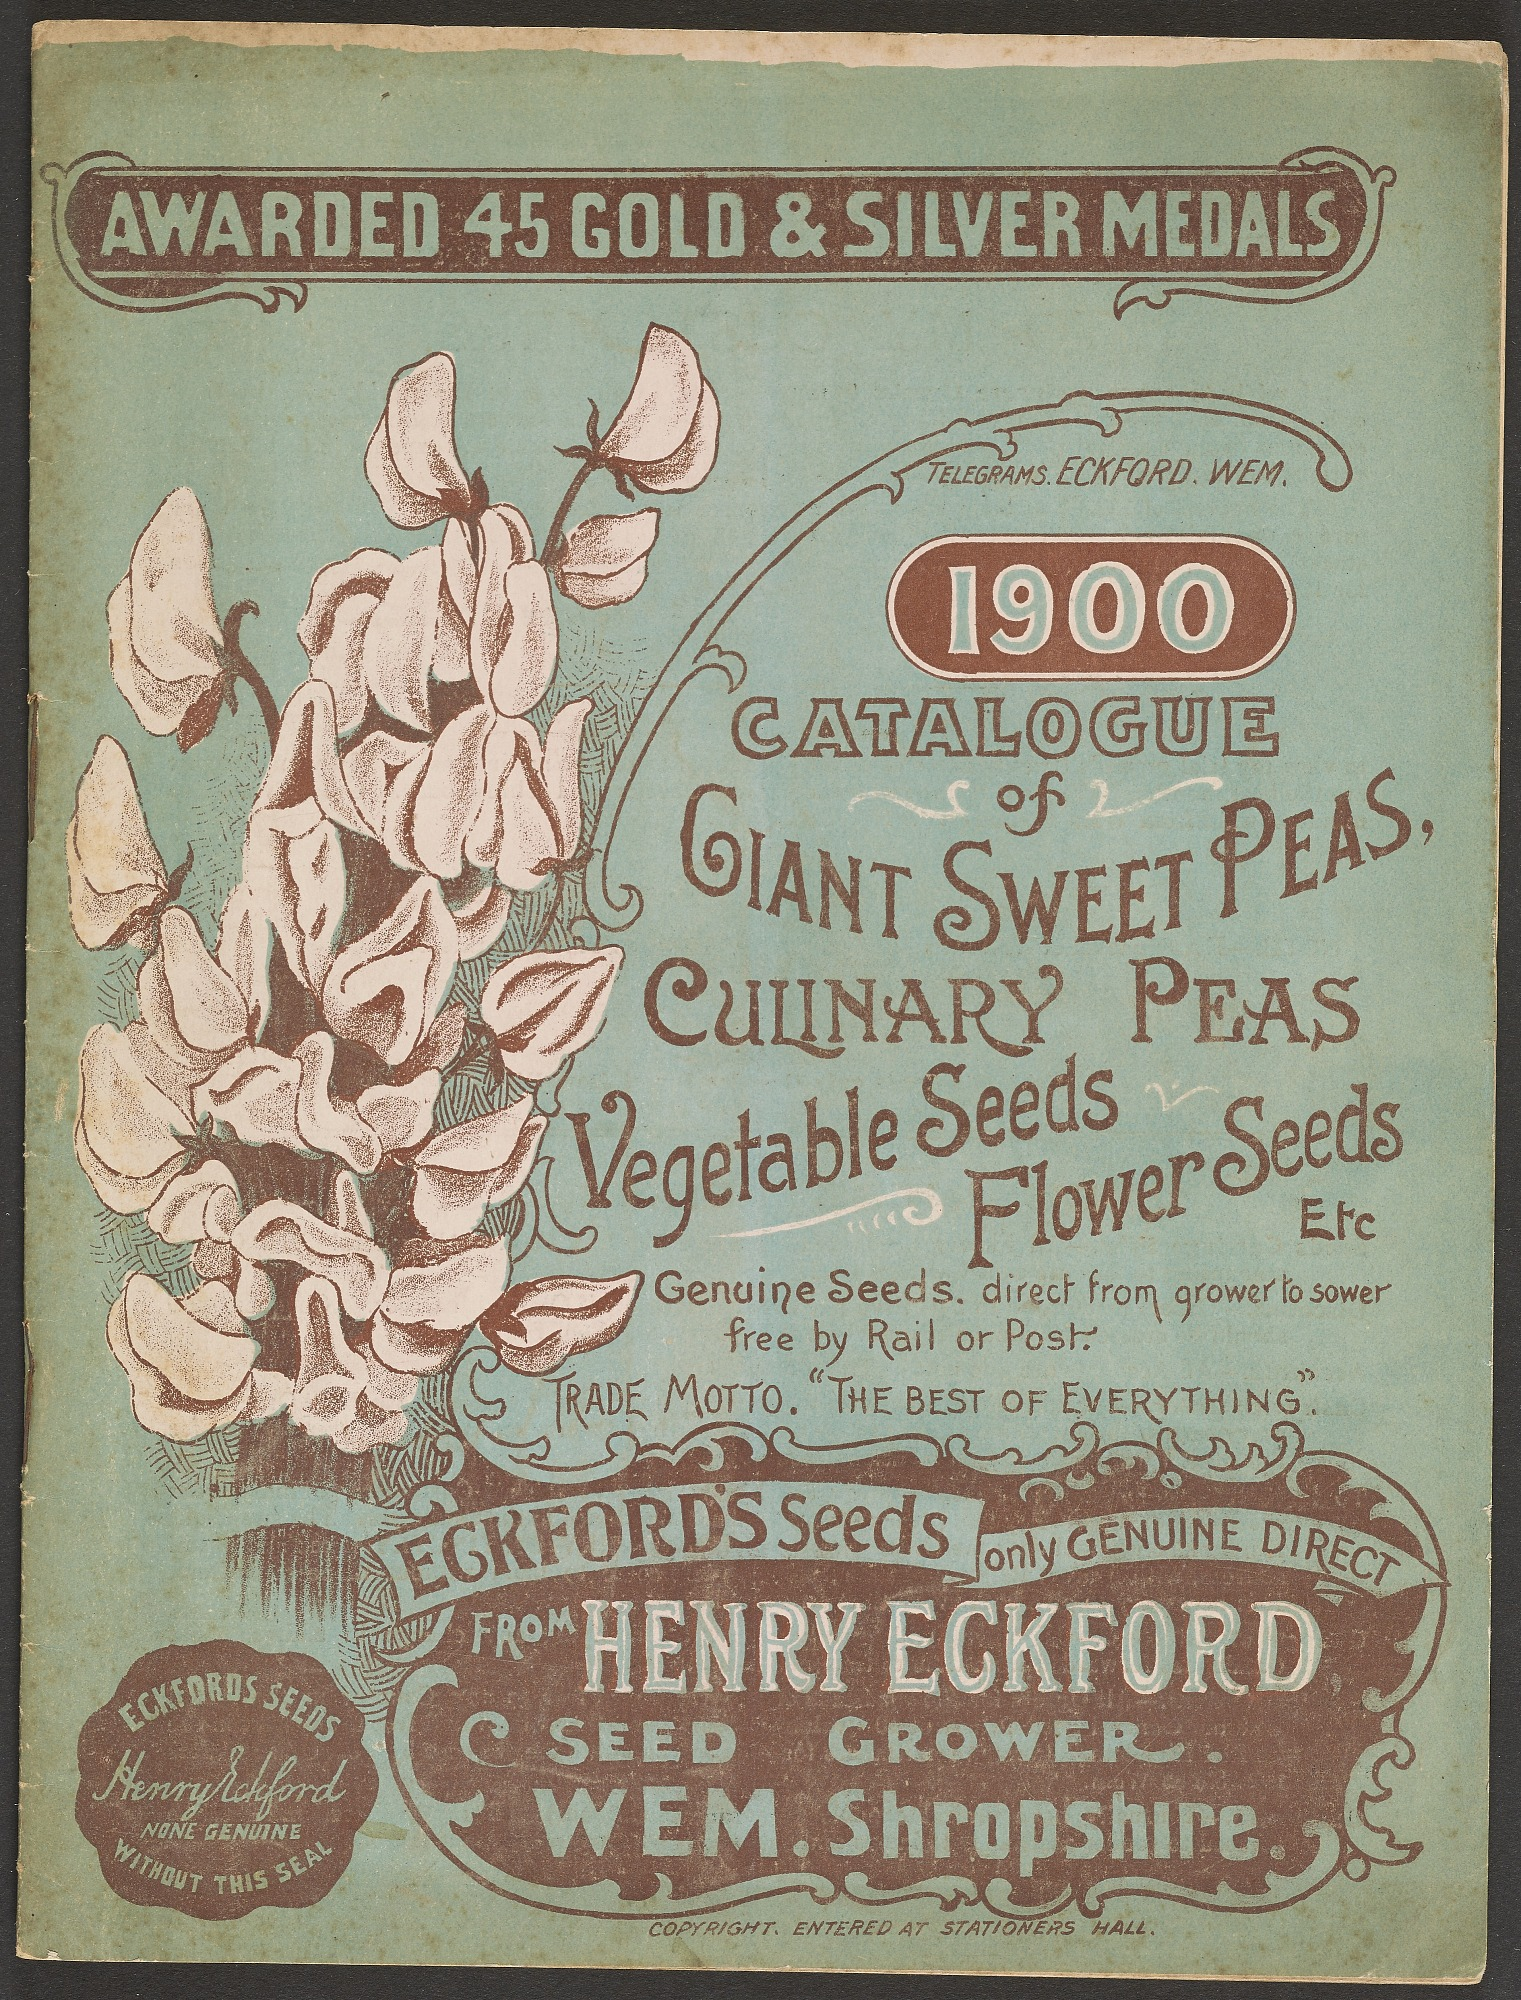 Eckford's Seeds, Catalogue of Giant Sweet Peas, 1900